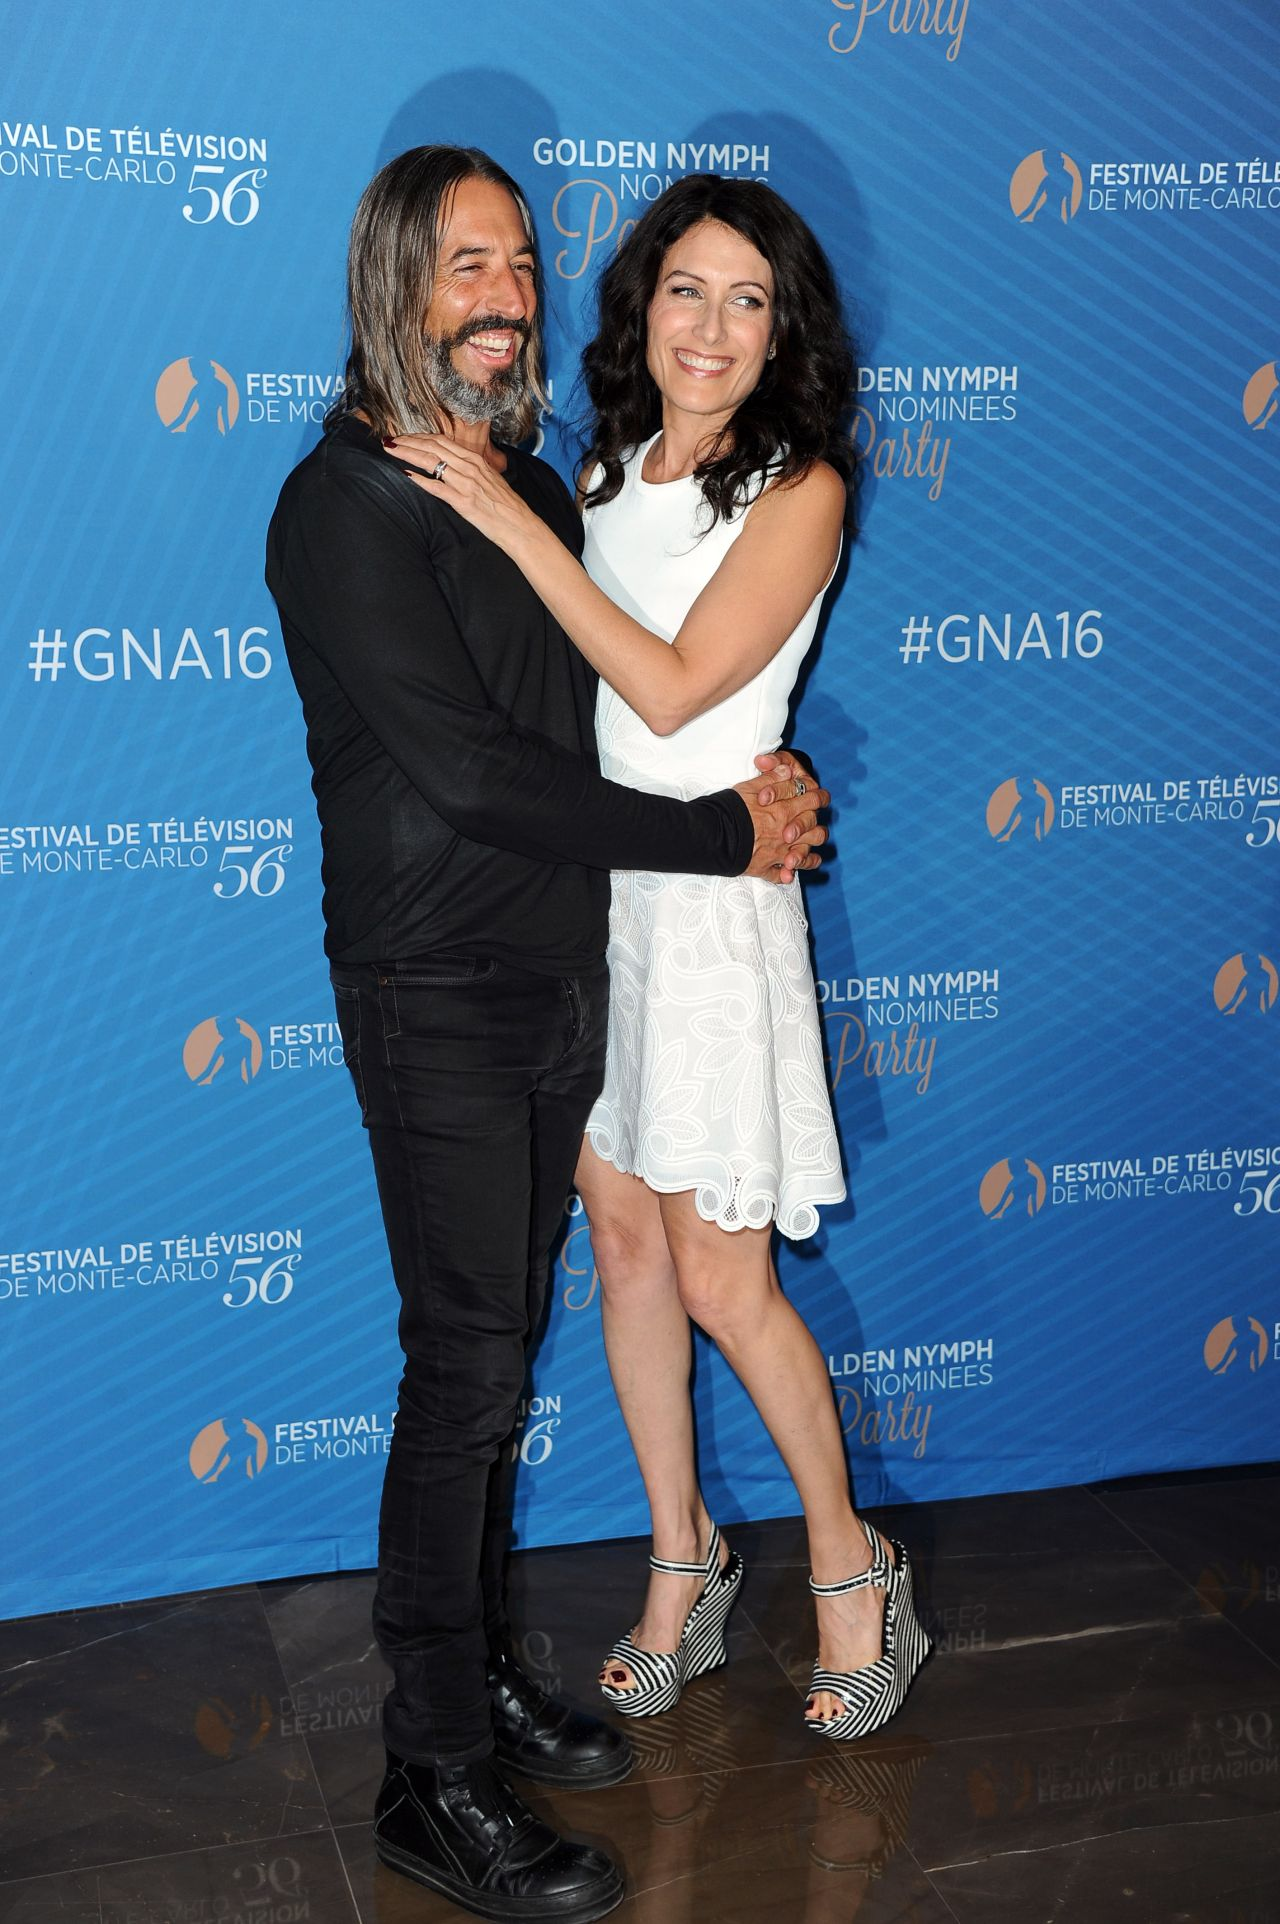 Lisa Edelstein Golden Nymph Nominee Party 2016 Monte